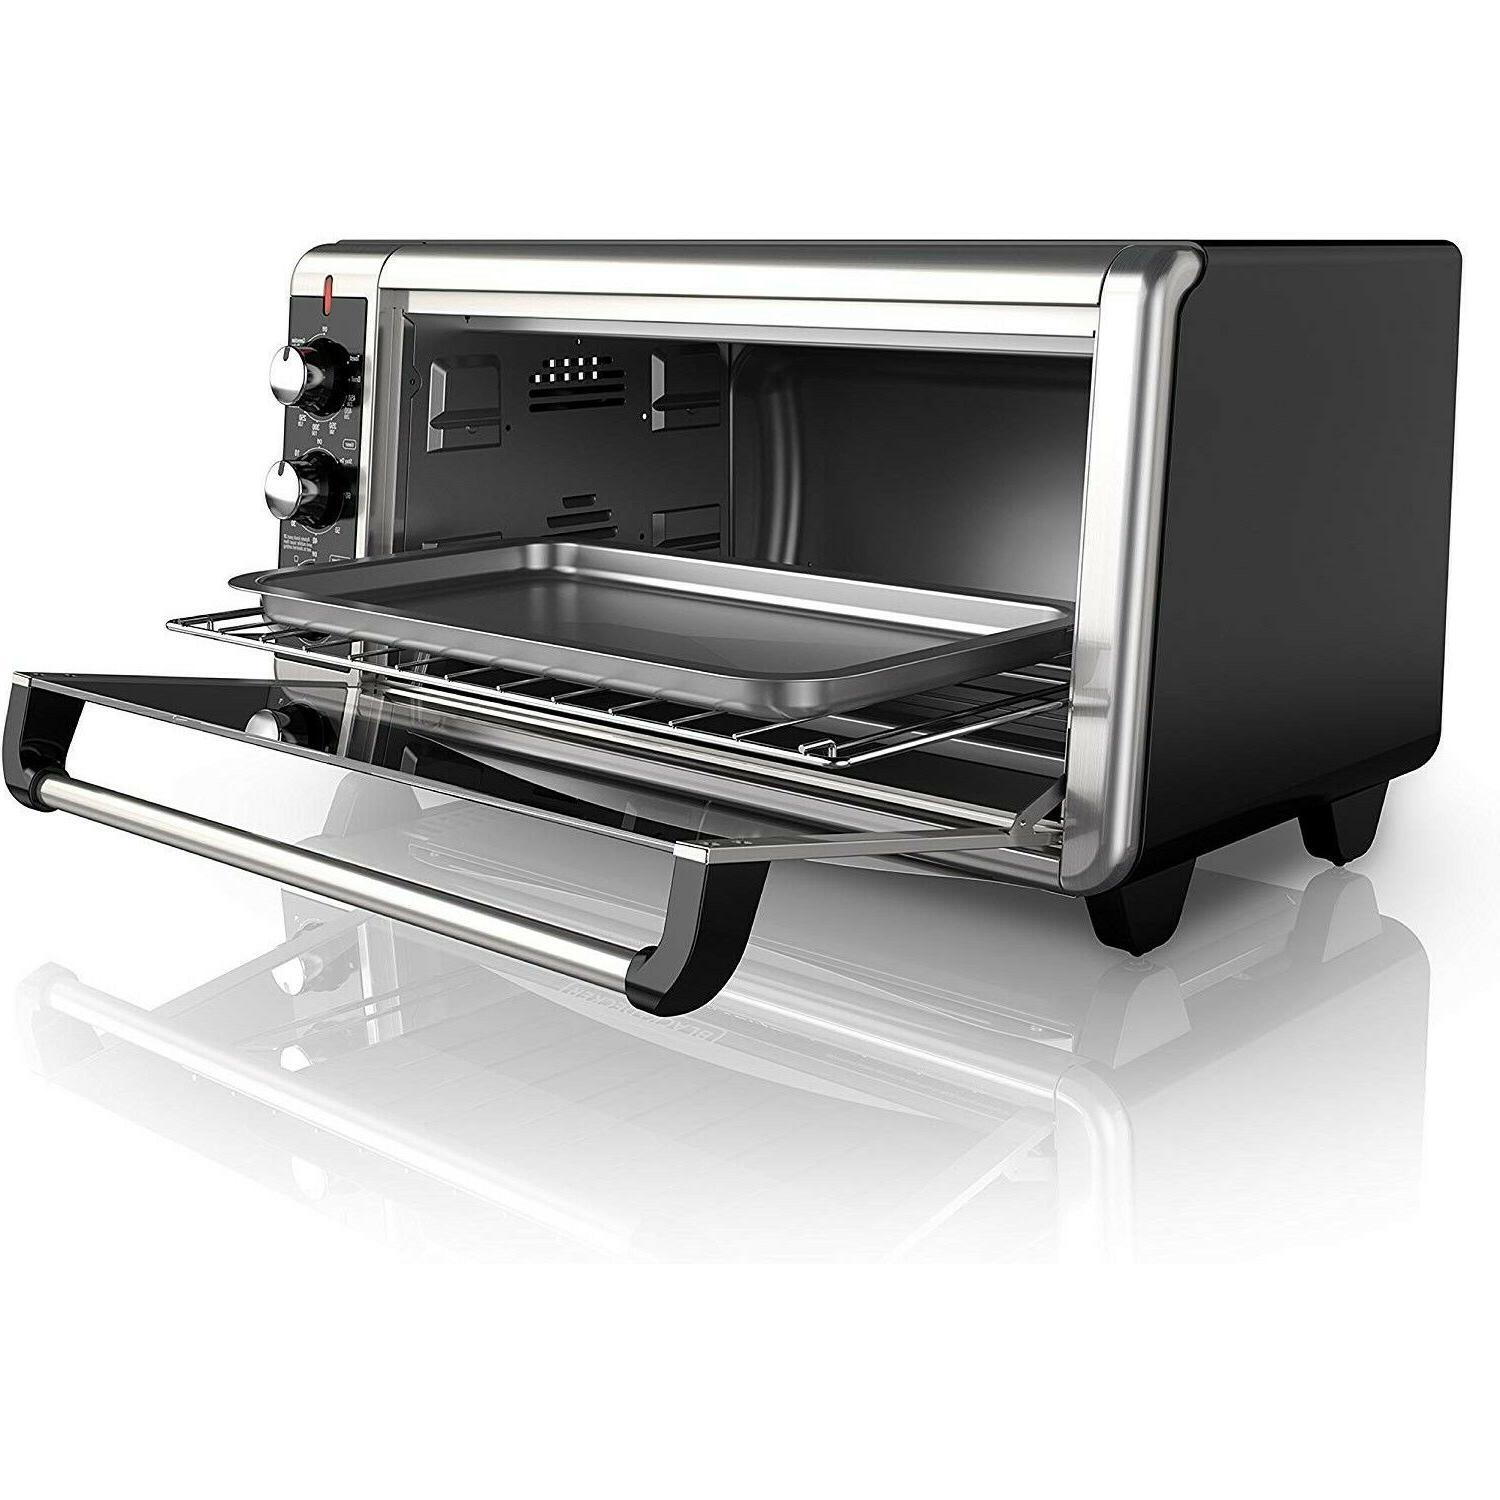 Extra Toaster Oven 8-Slice Pan